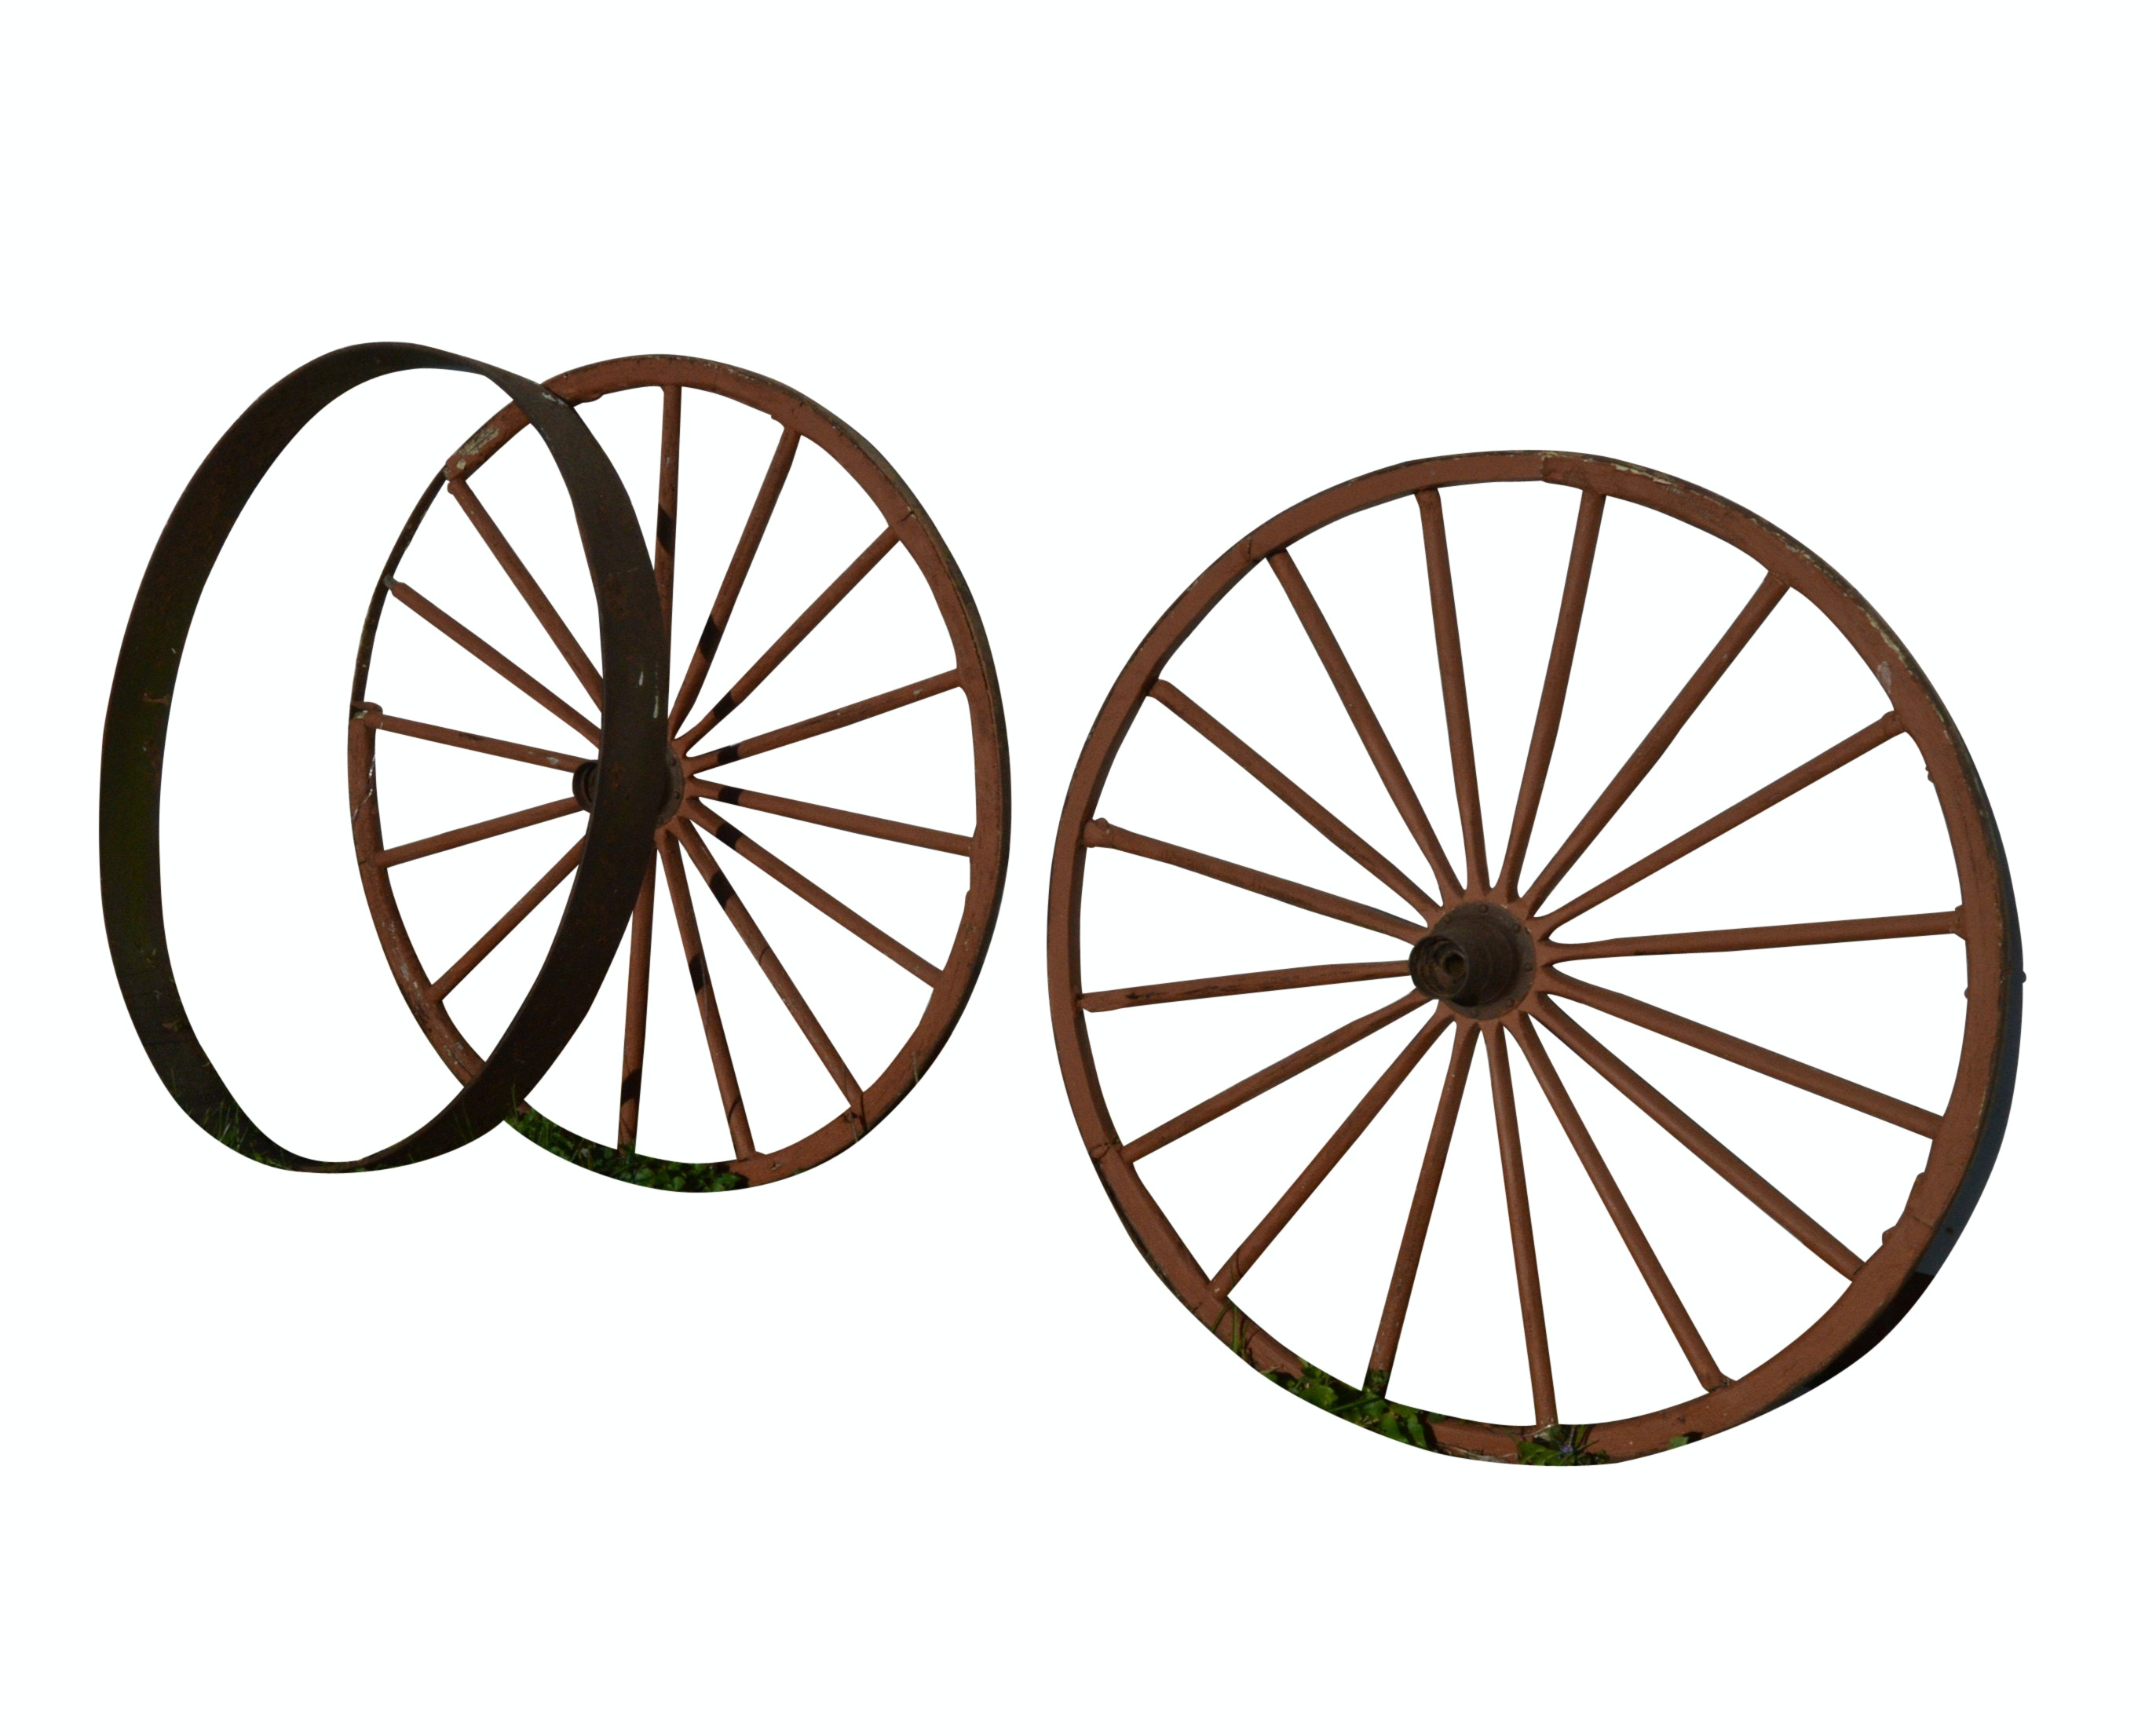 Vintage Wooden Wagon Wheels with Steel Wagon Tire